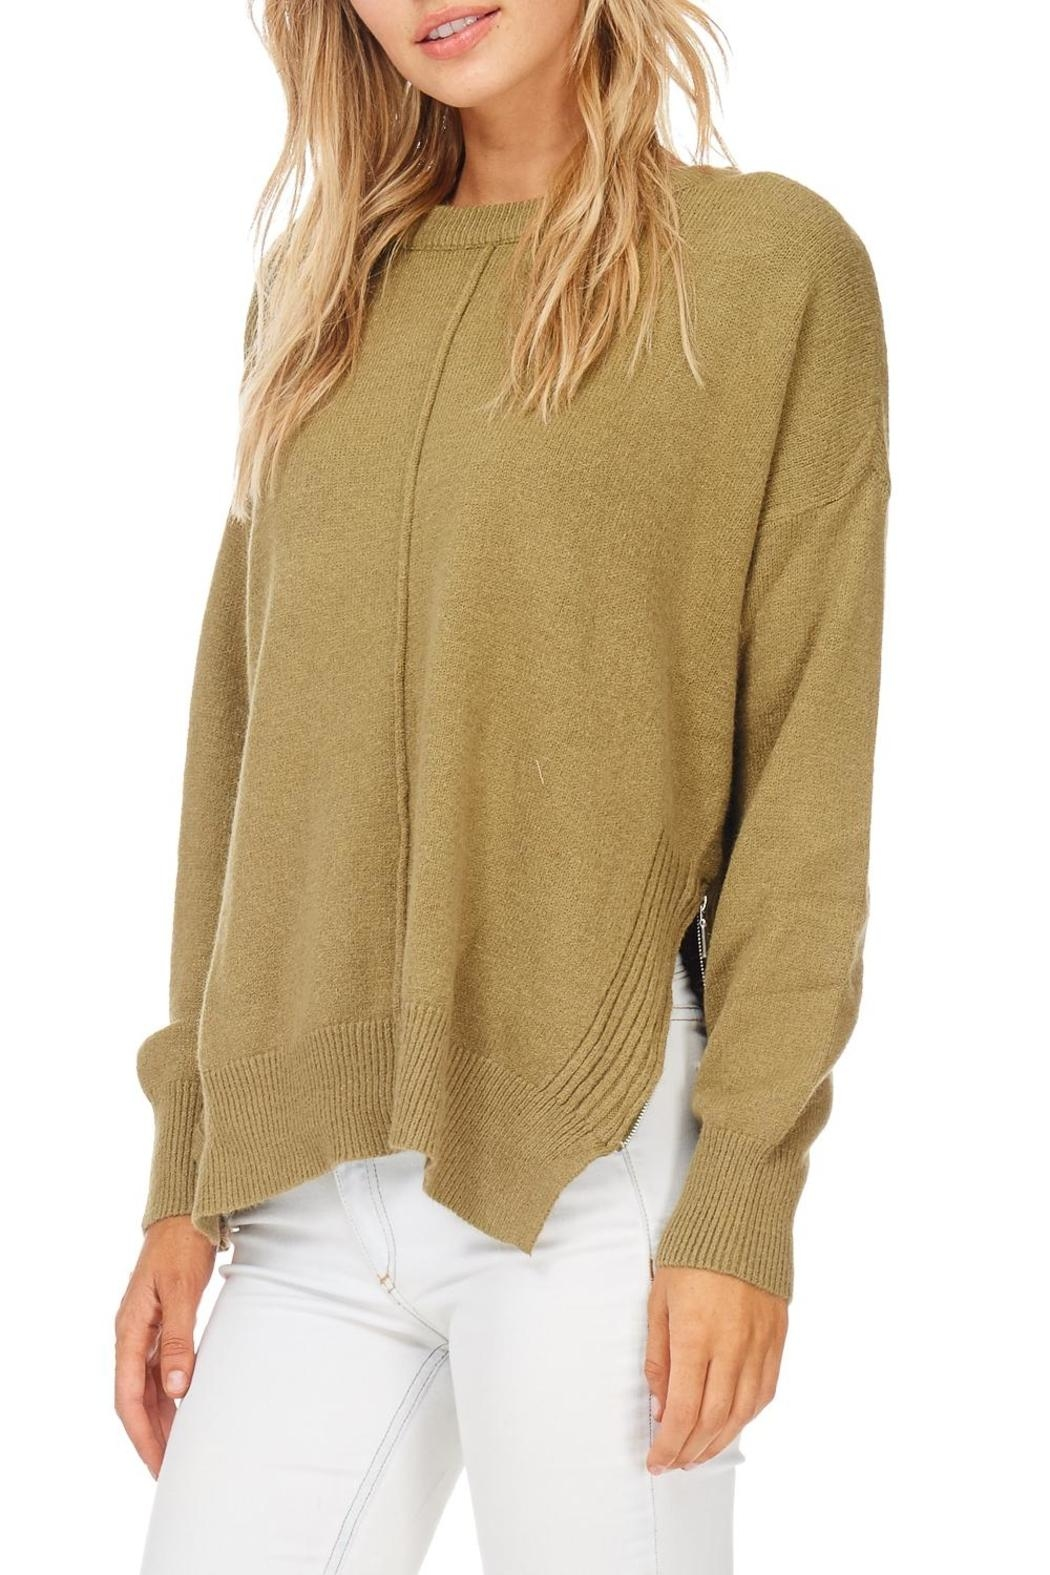 Hem & Thread Olive Crew Neck Sweater - Front Full Image